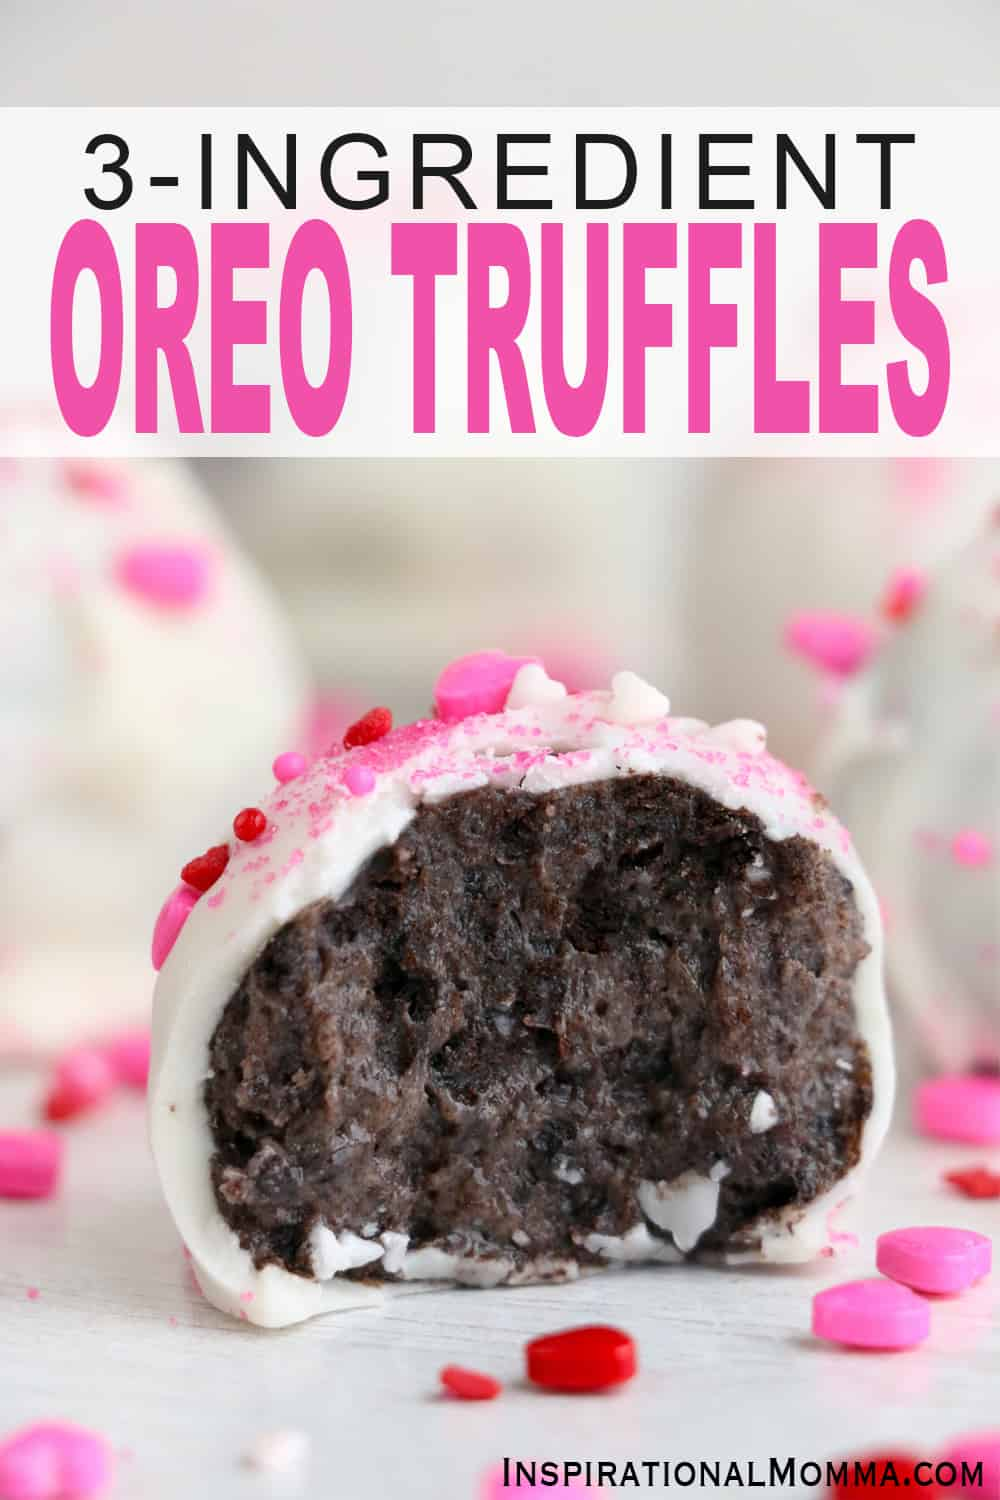 No baking required to make these 3-Ingredient Oreo Truffles. They are easy to make and taste delicious. Simple Oreo balls are sure to impress! #InspirationalMomma #nobakeoreotruffles #nobakedesserts #oreotruffles #desserts #oreodesserts